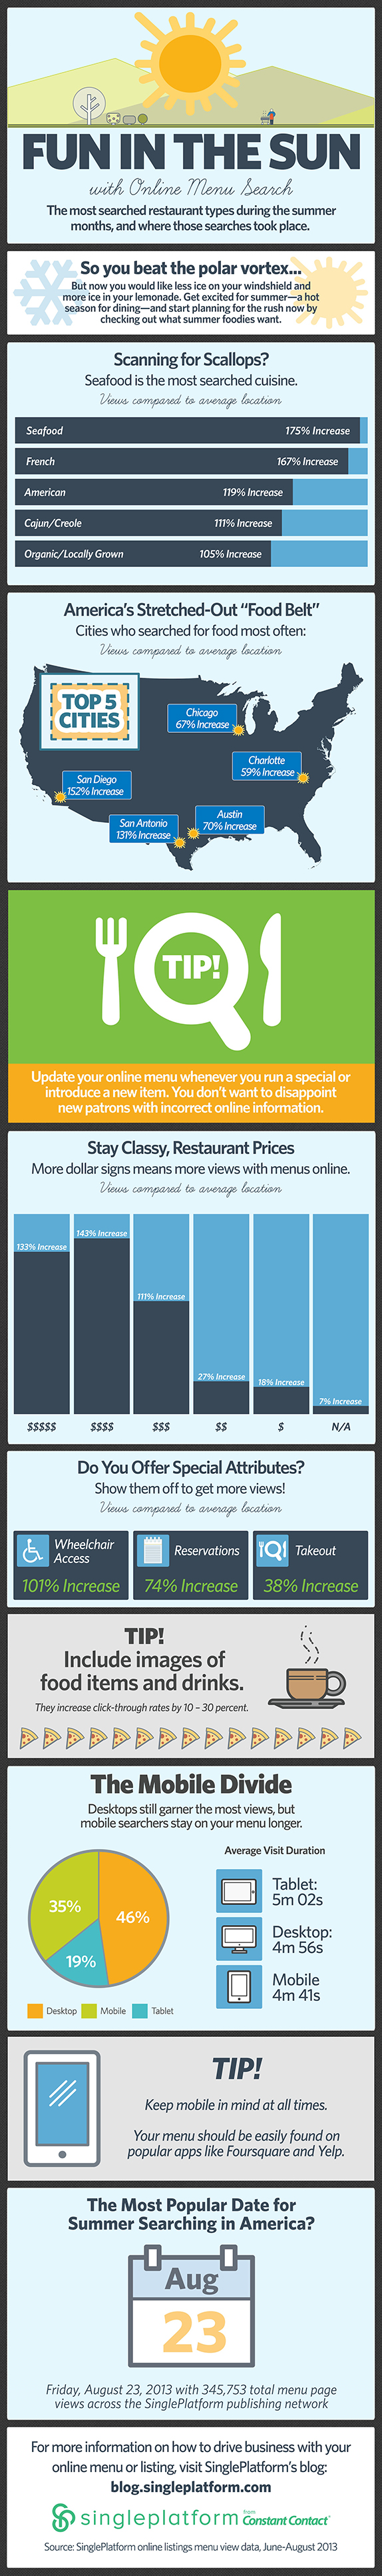 SinglePlatform Menu Data Infographic